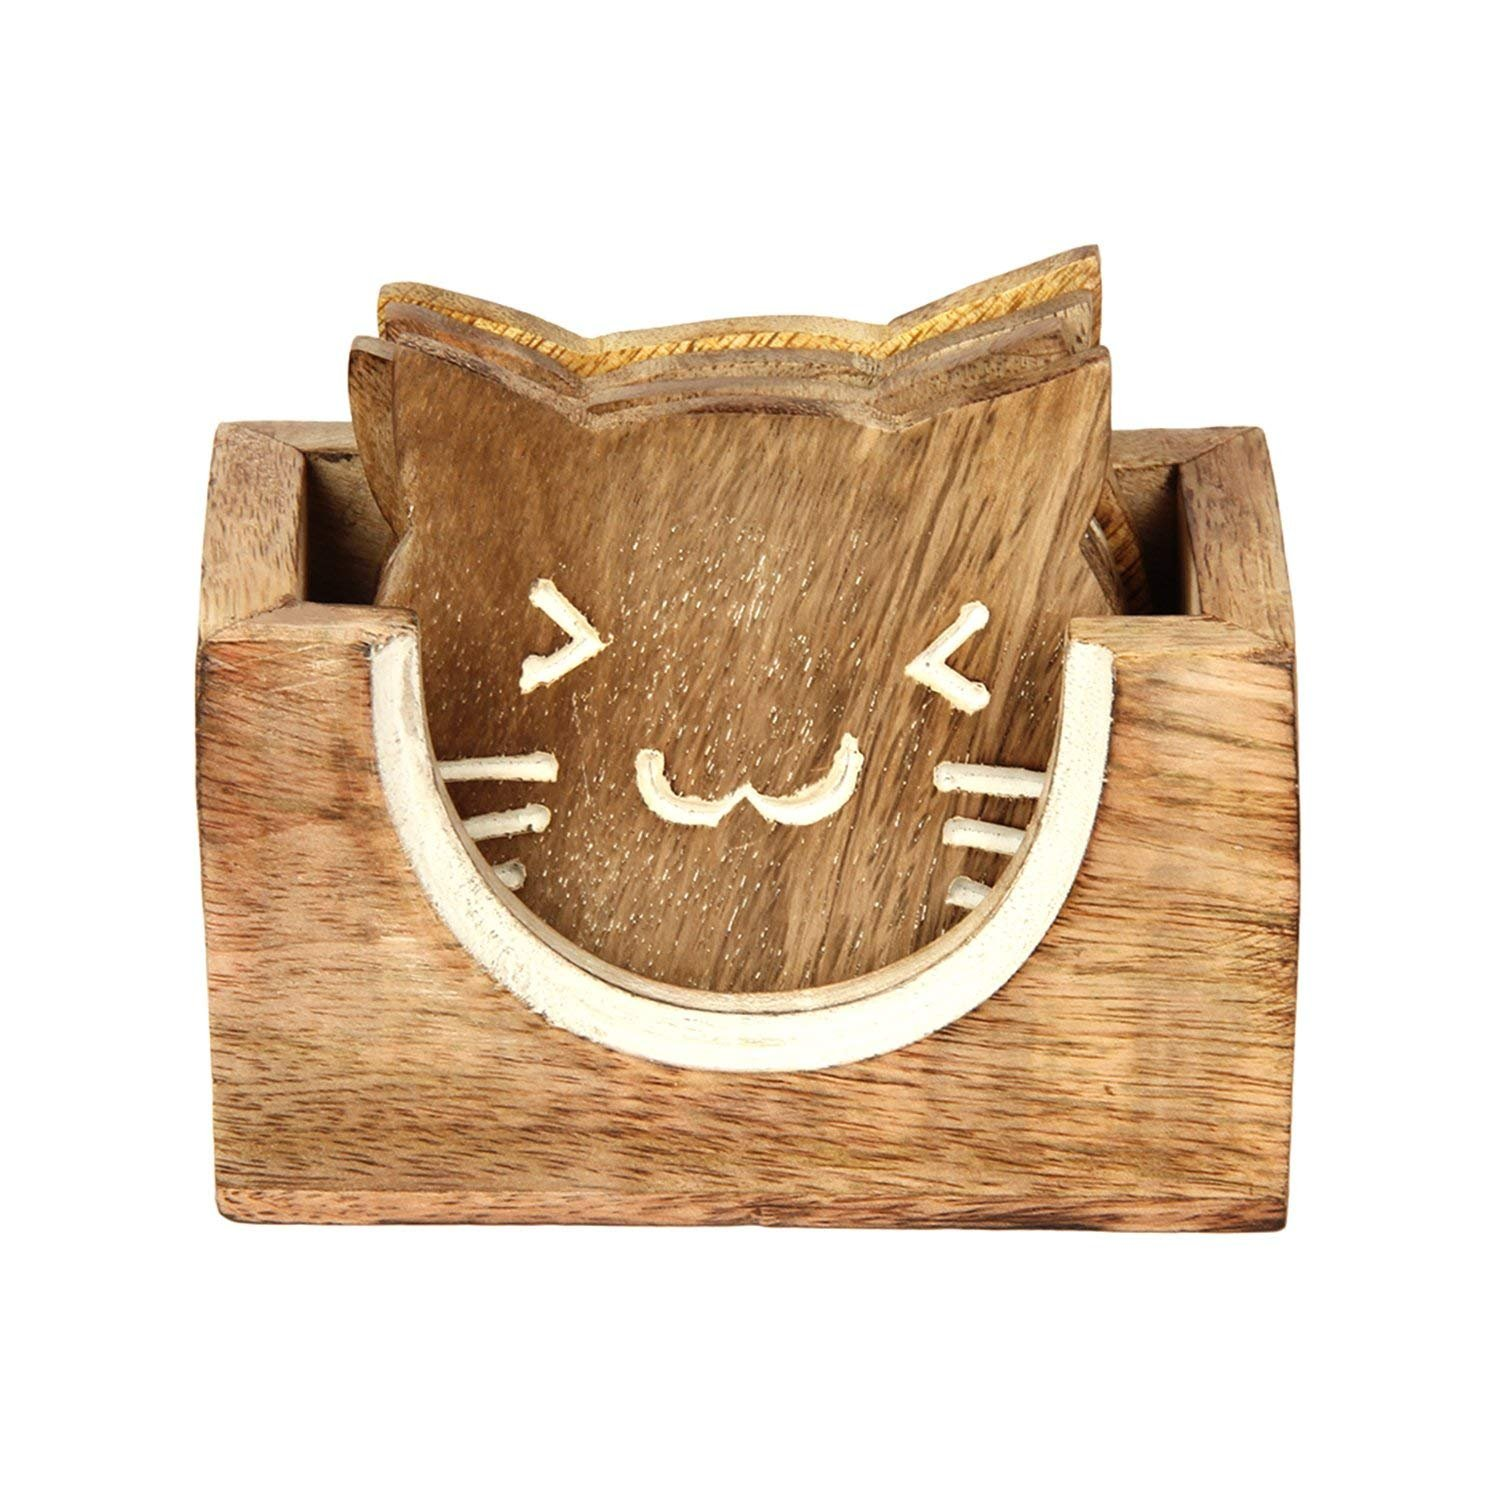 Wooden Set of 4 Cat Shaped Coasters for Drinks with Holder Tea Coffee Mug Glass Coaster Bar Dining Accessories - Aheli